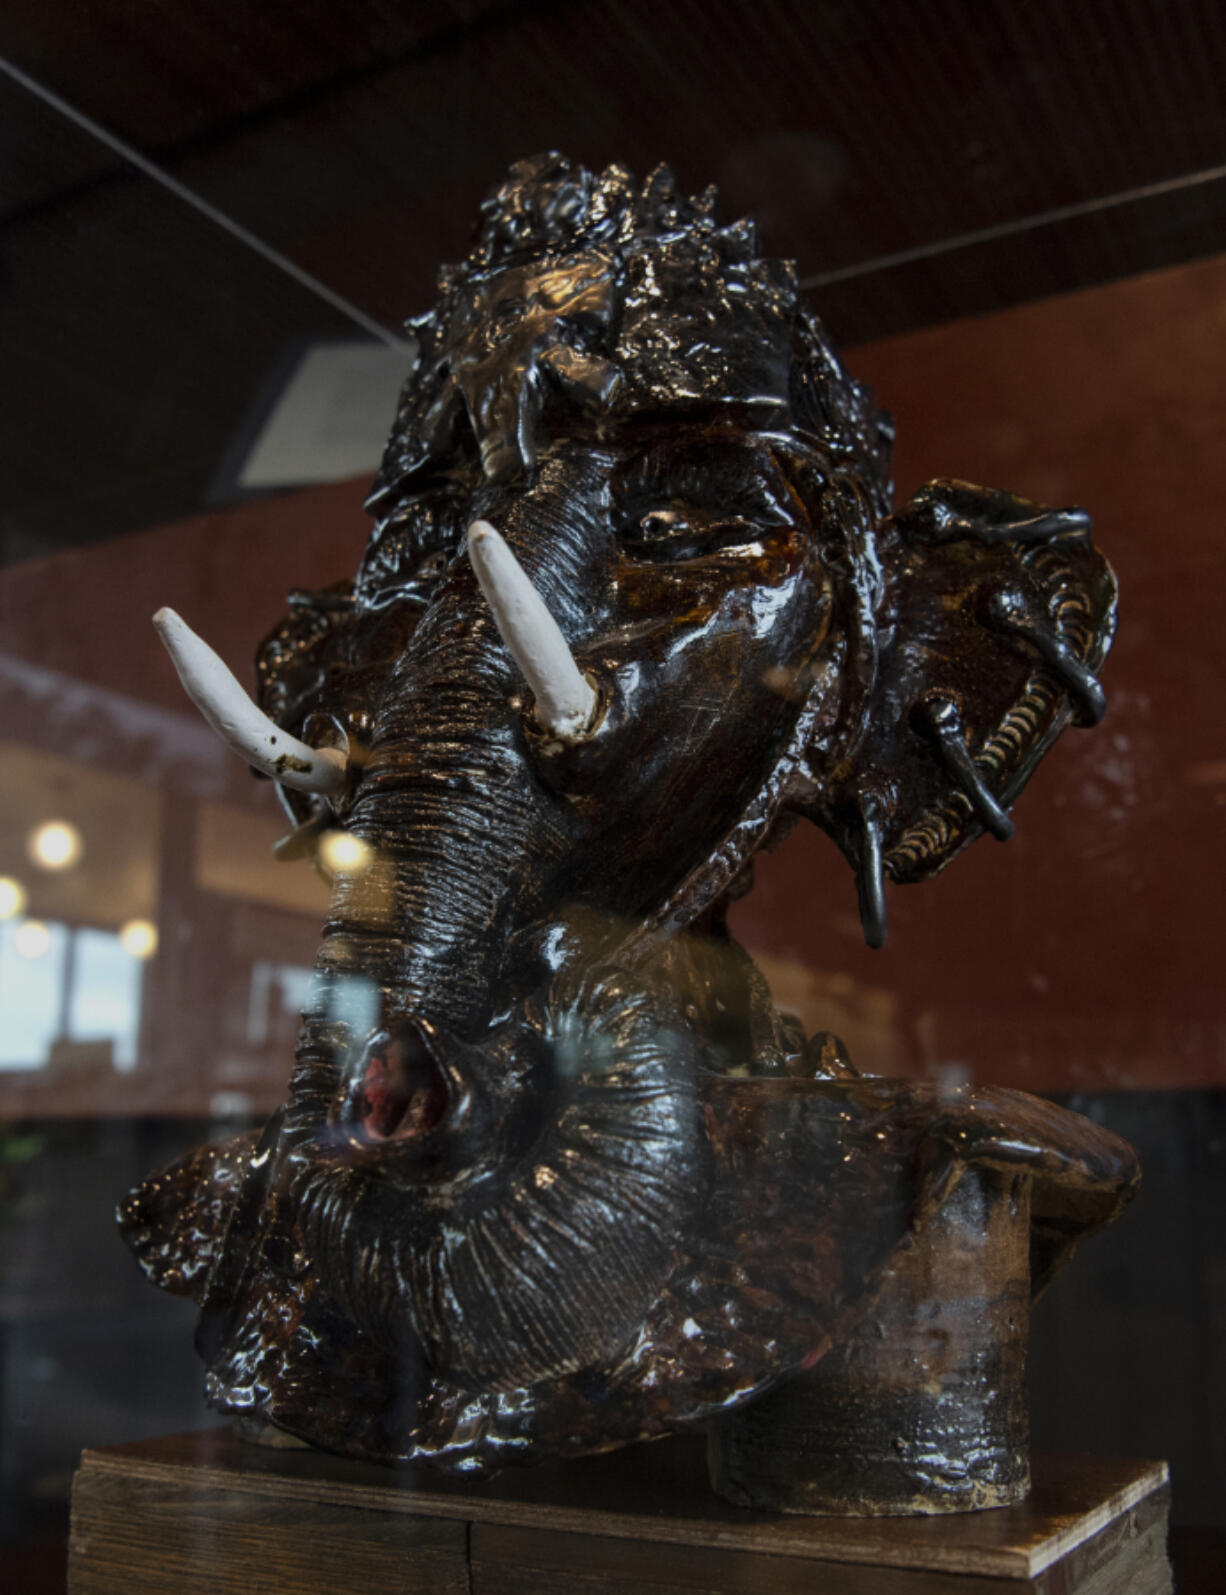 Claudia Carter's Elephant Goddess sculpture sits behind a glass case in the Vancouver Community Library's fifth-floor Vancouver Room. Carter is known for creating an annual Black History Month exhibit at the library.